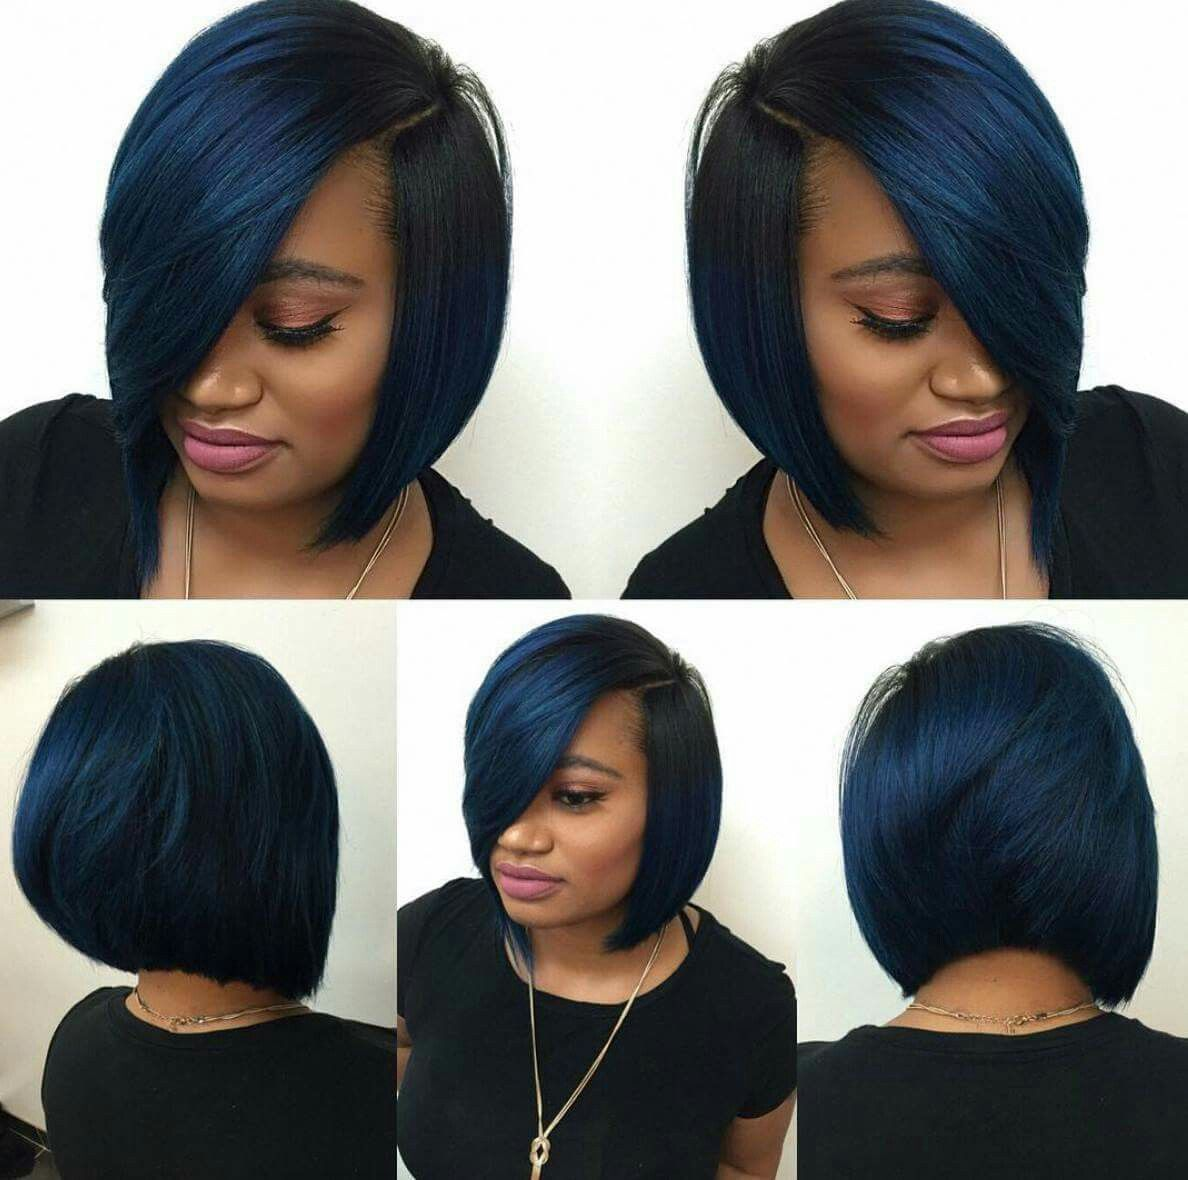 Blue Bob Follow Jewelbyrd843 For More Short Hair Styles Hair Styles Bob Hairstyles